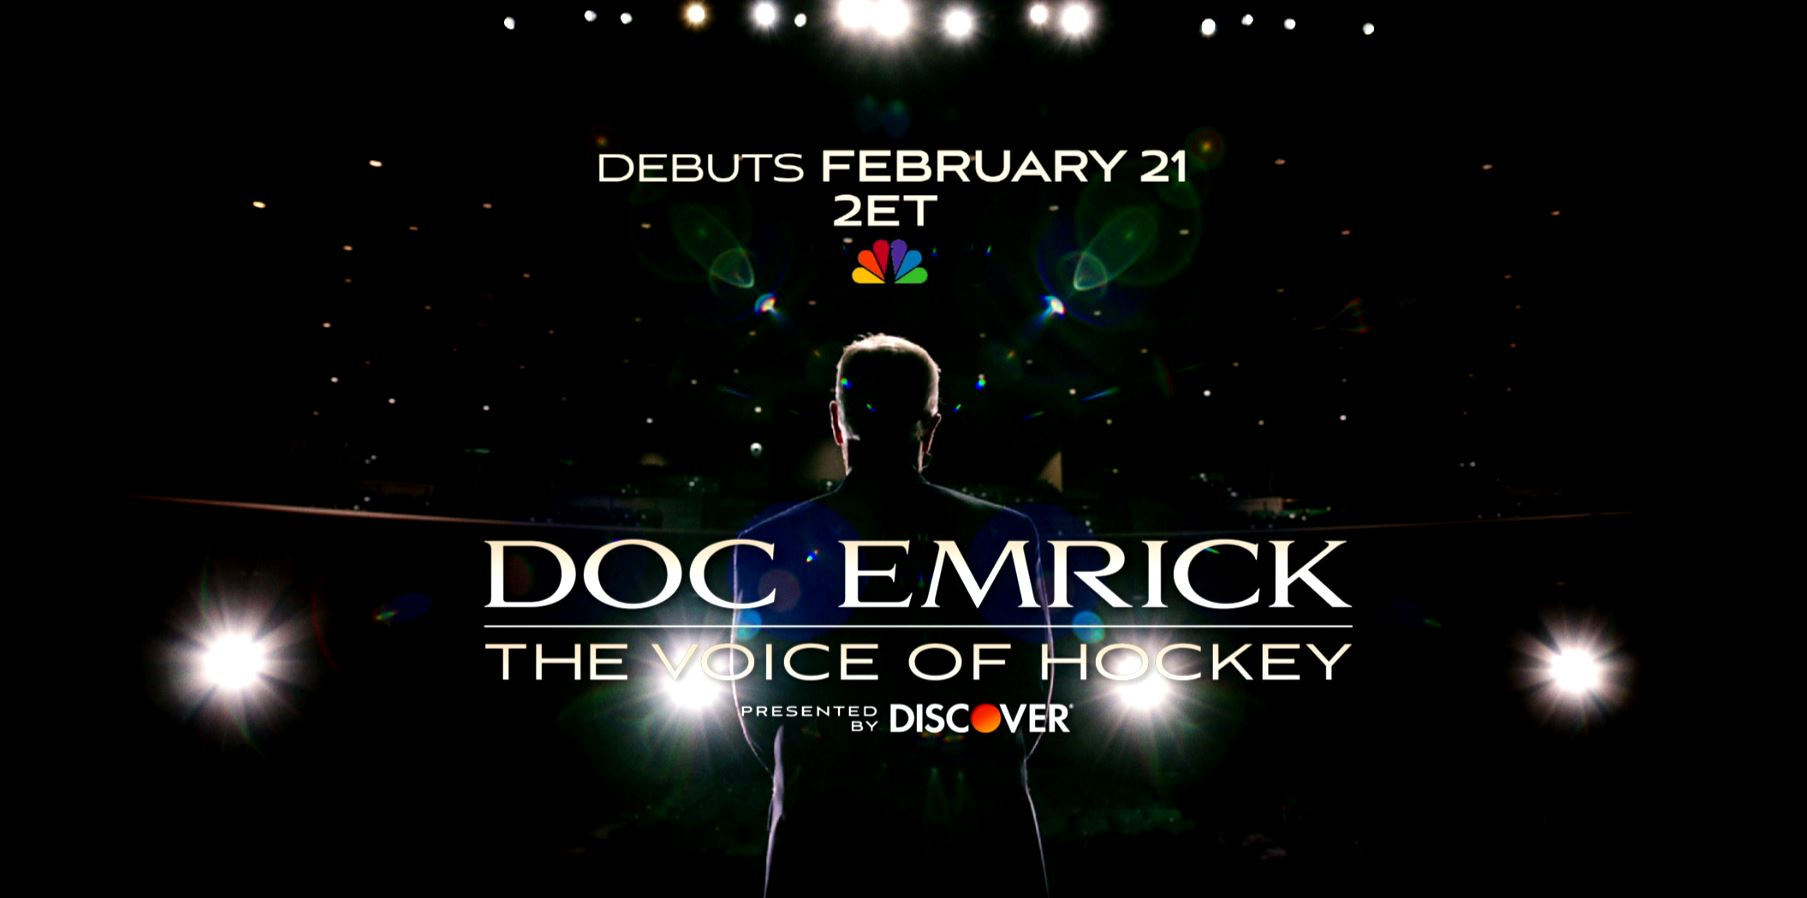 `Doc Emrick - The Voice of Hockey,` presented by Discover (Image courtesy of NBC Sports)